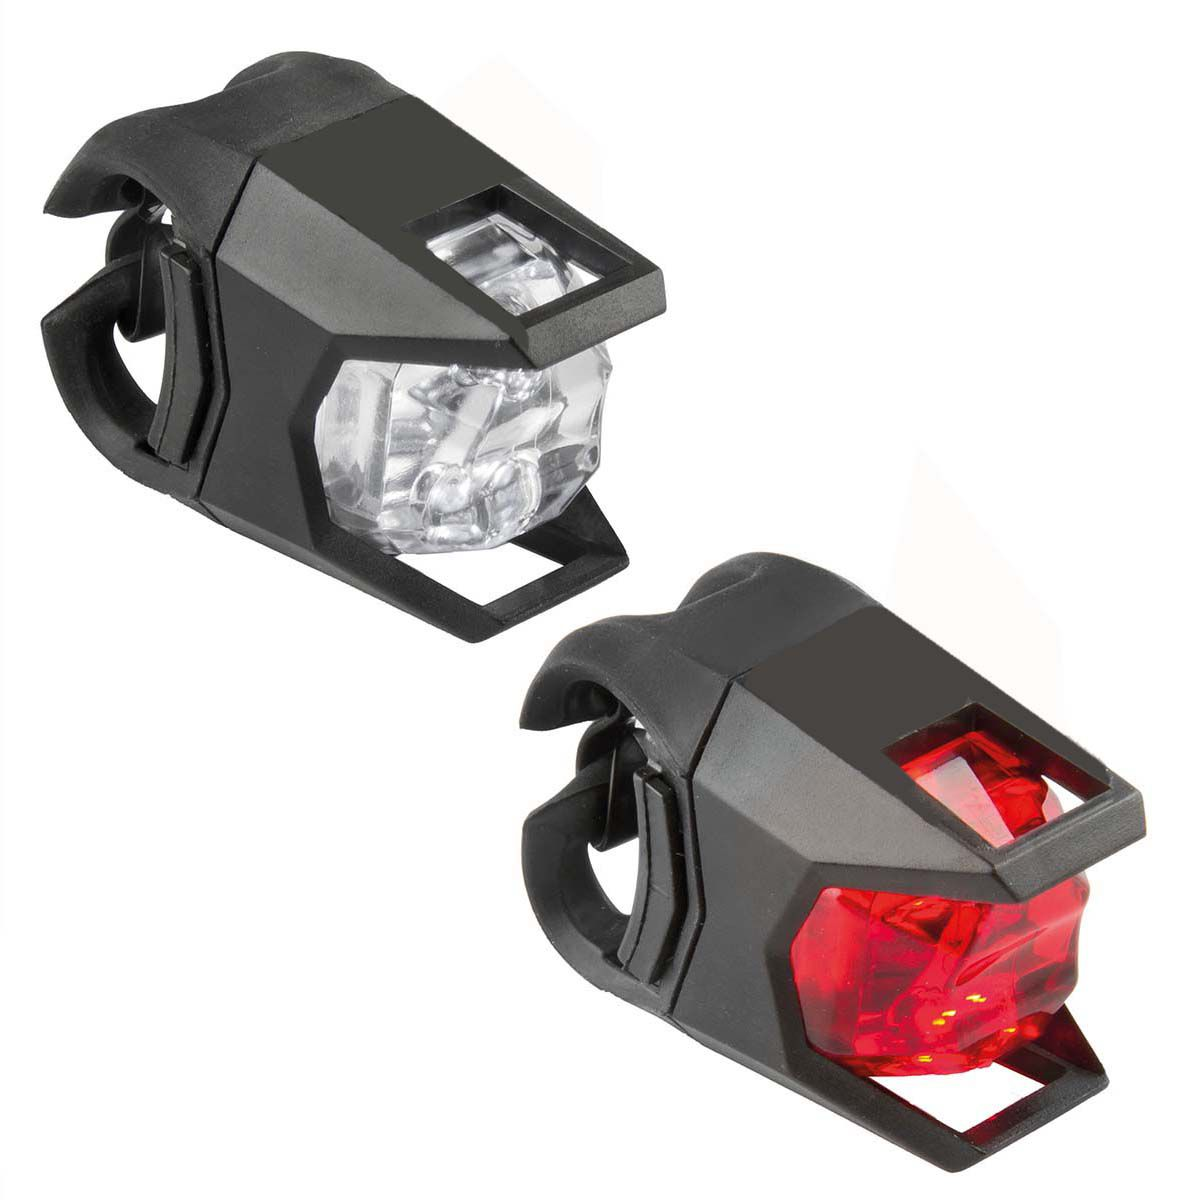 Pisca Light Dt/Ts 1 Led 2 Funçoes Elleven  - REAL ESPORTE